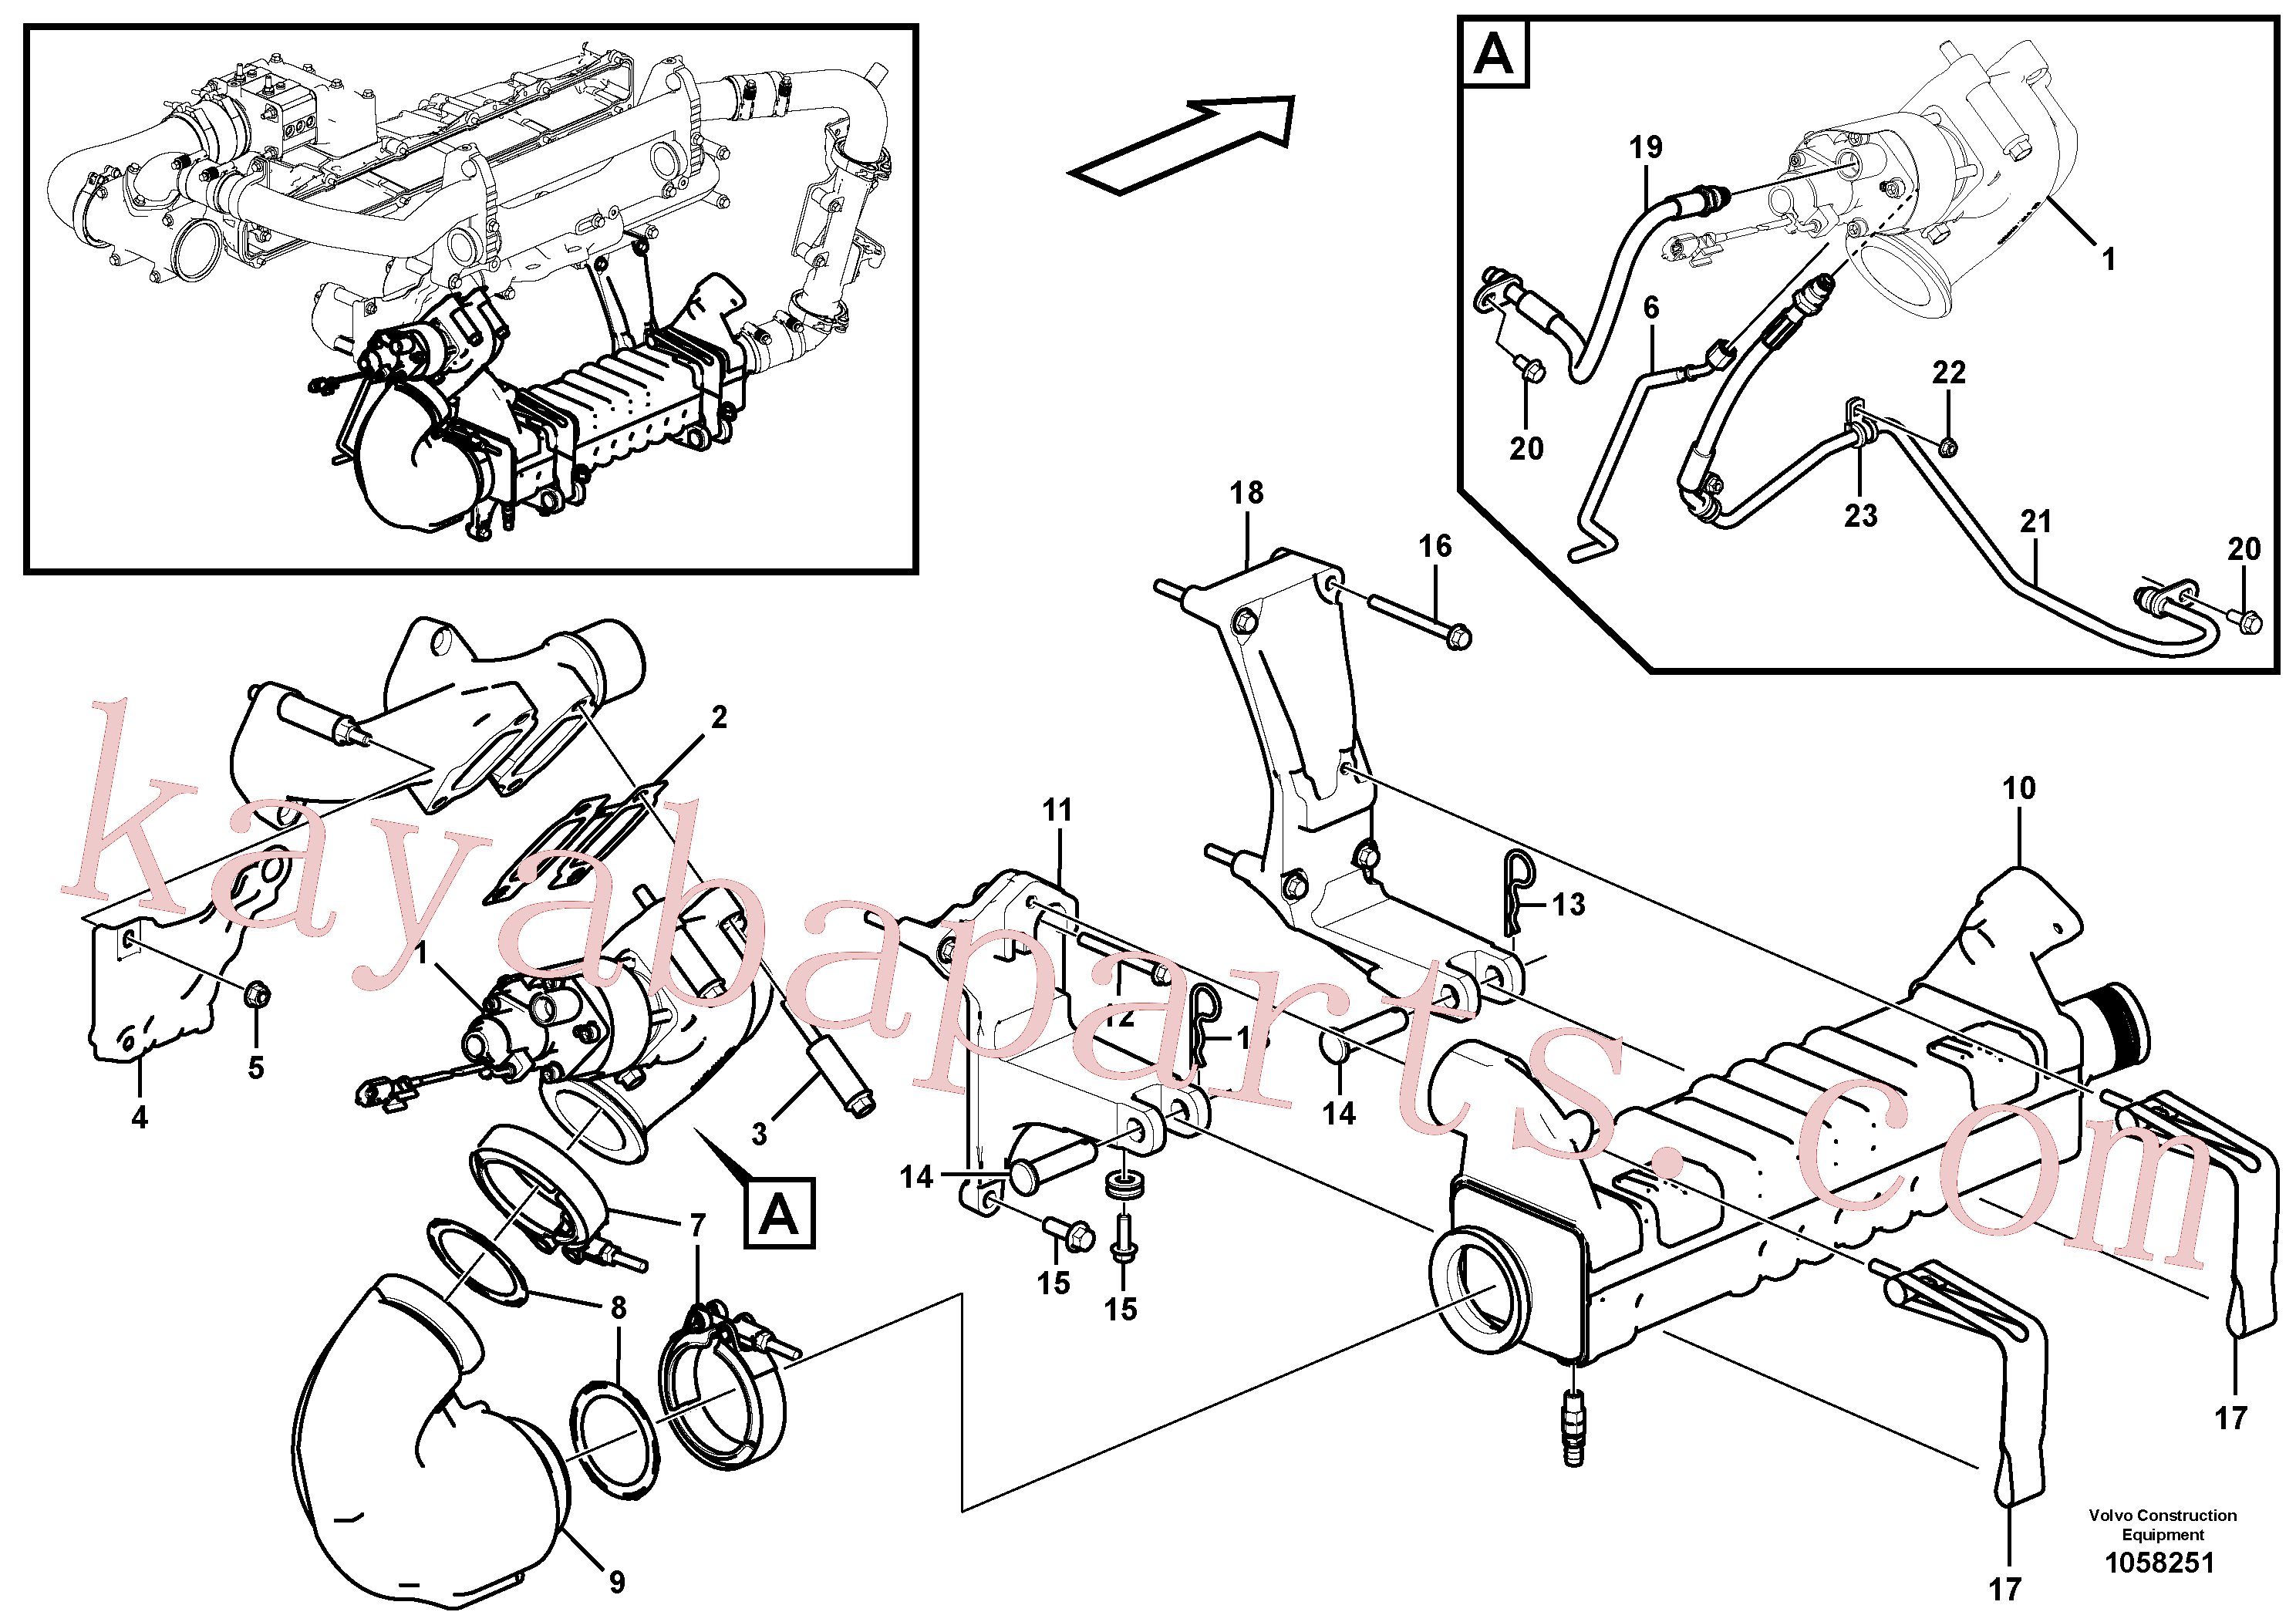 VOE13964907 for Volvo EGR - warm side(1058251 assembly)